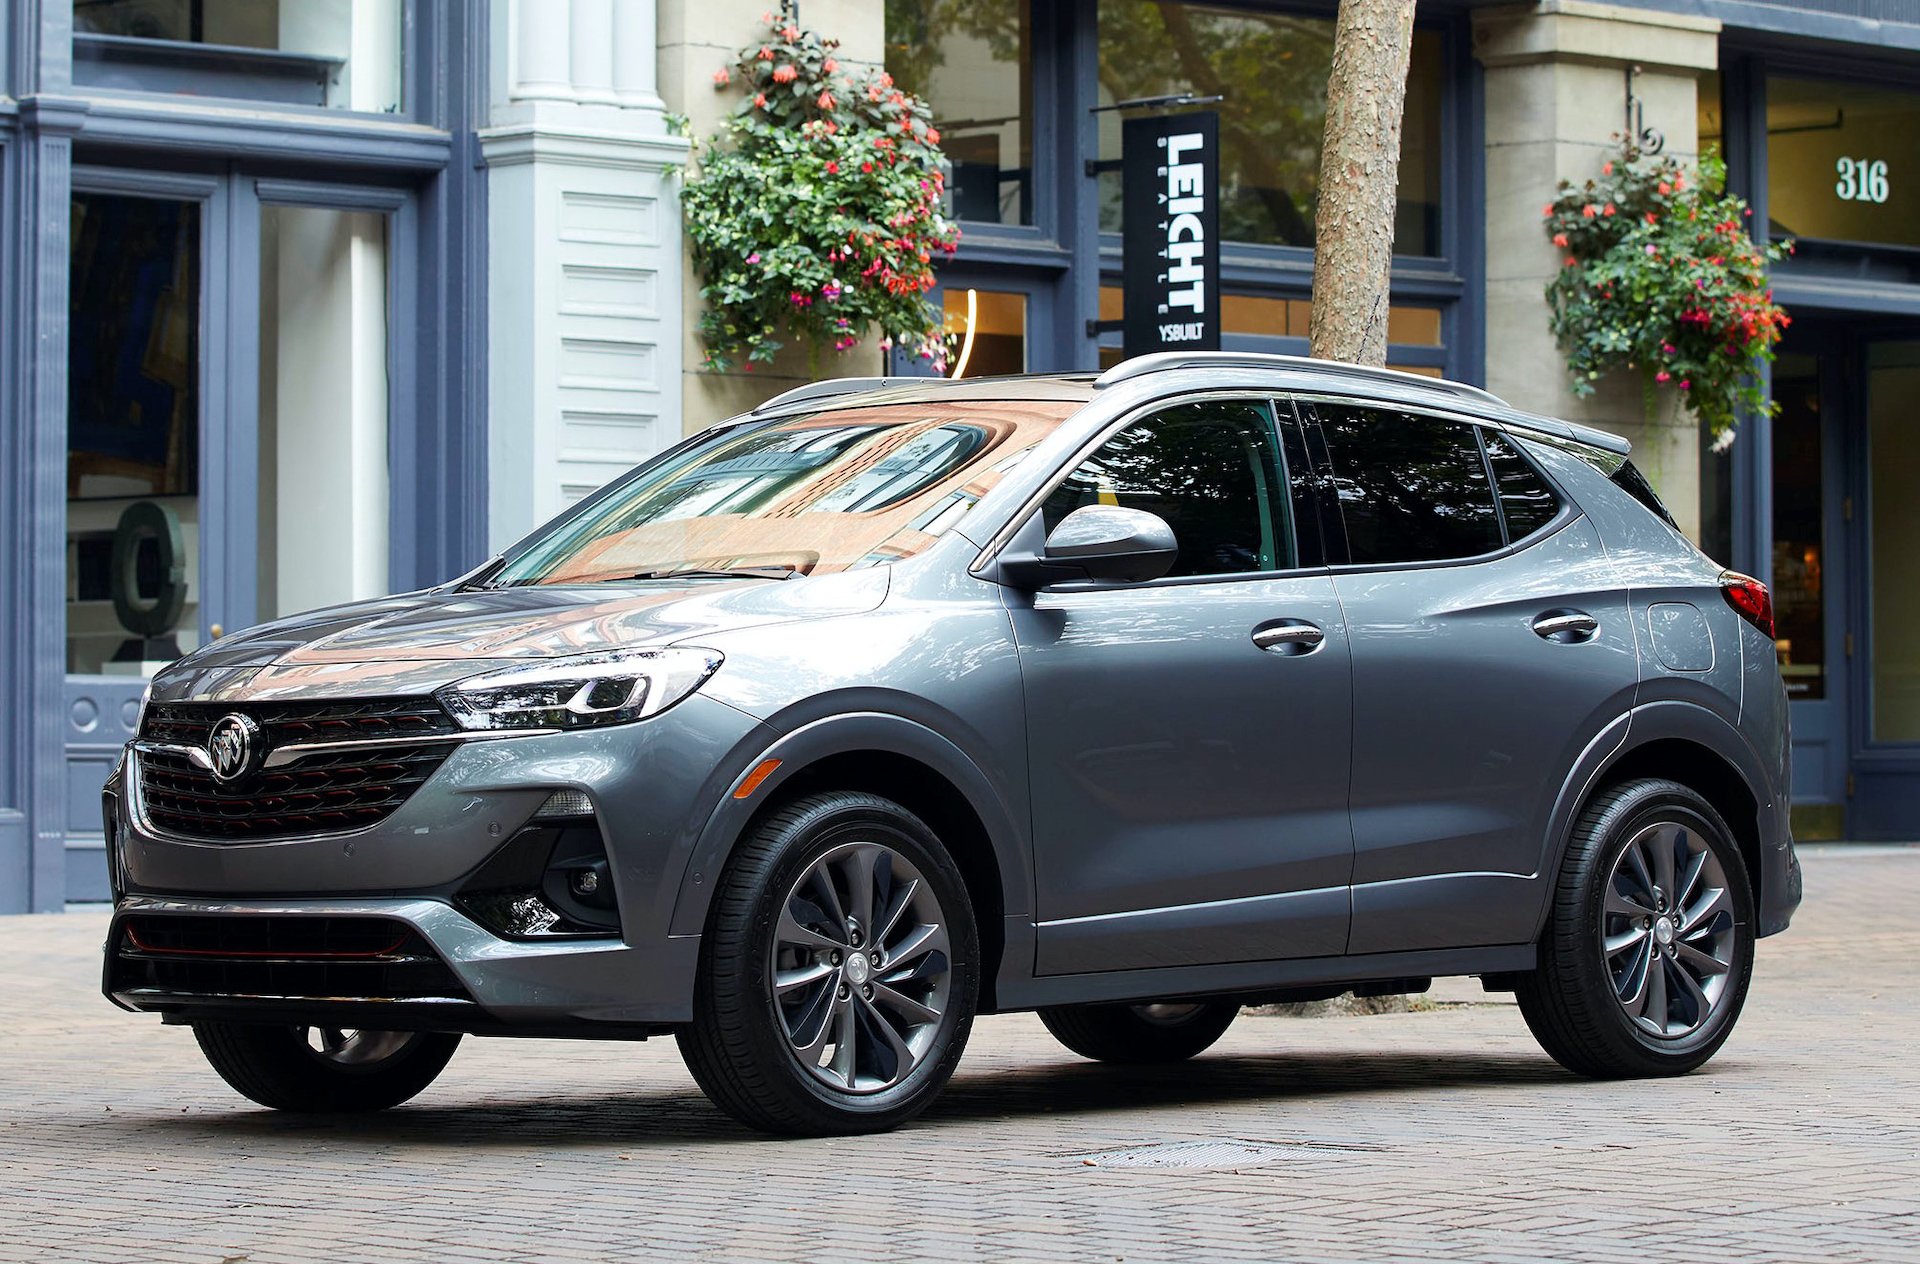 2021 Buick Encore Review, Ratings, Specs, Prices, And Photos 2021 Buick Encore Horsepower, Interior Colors, Infotainment System